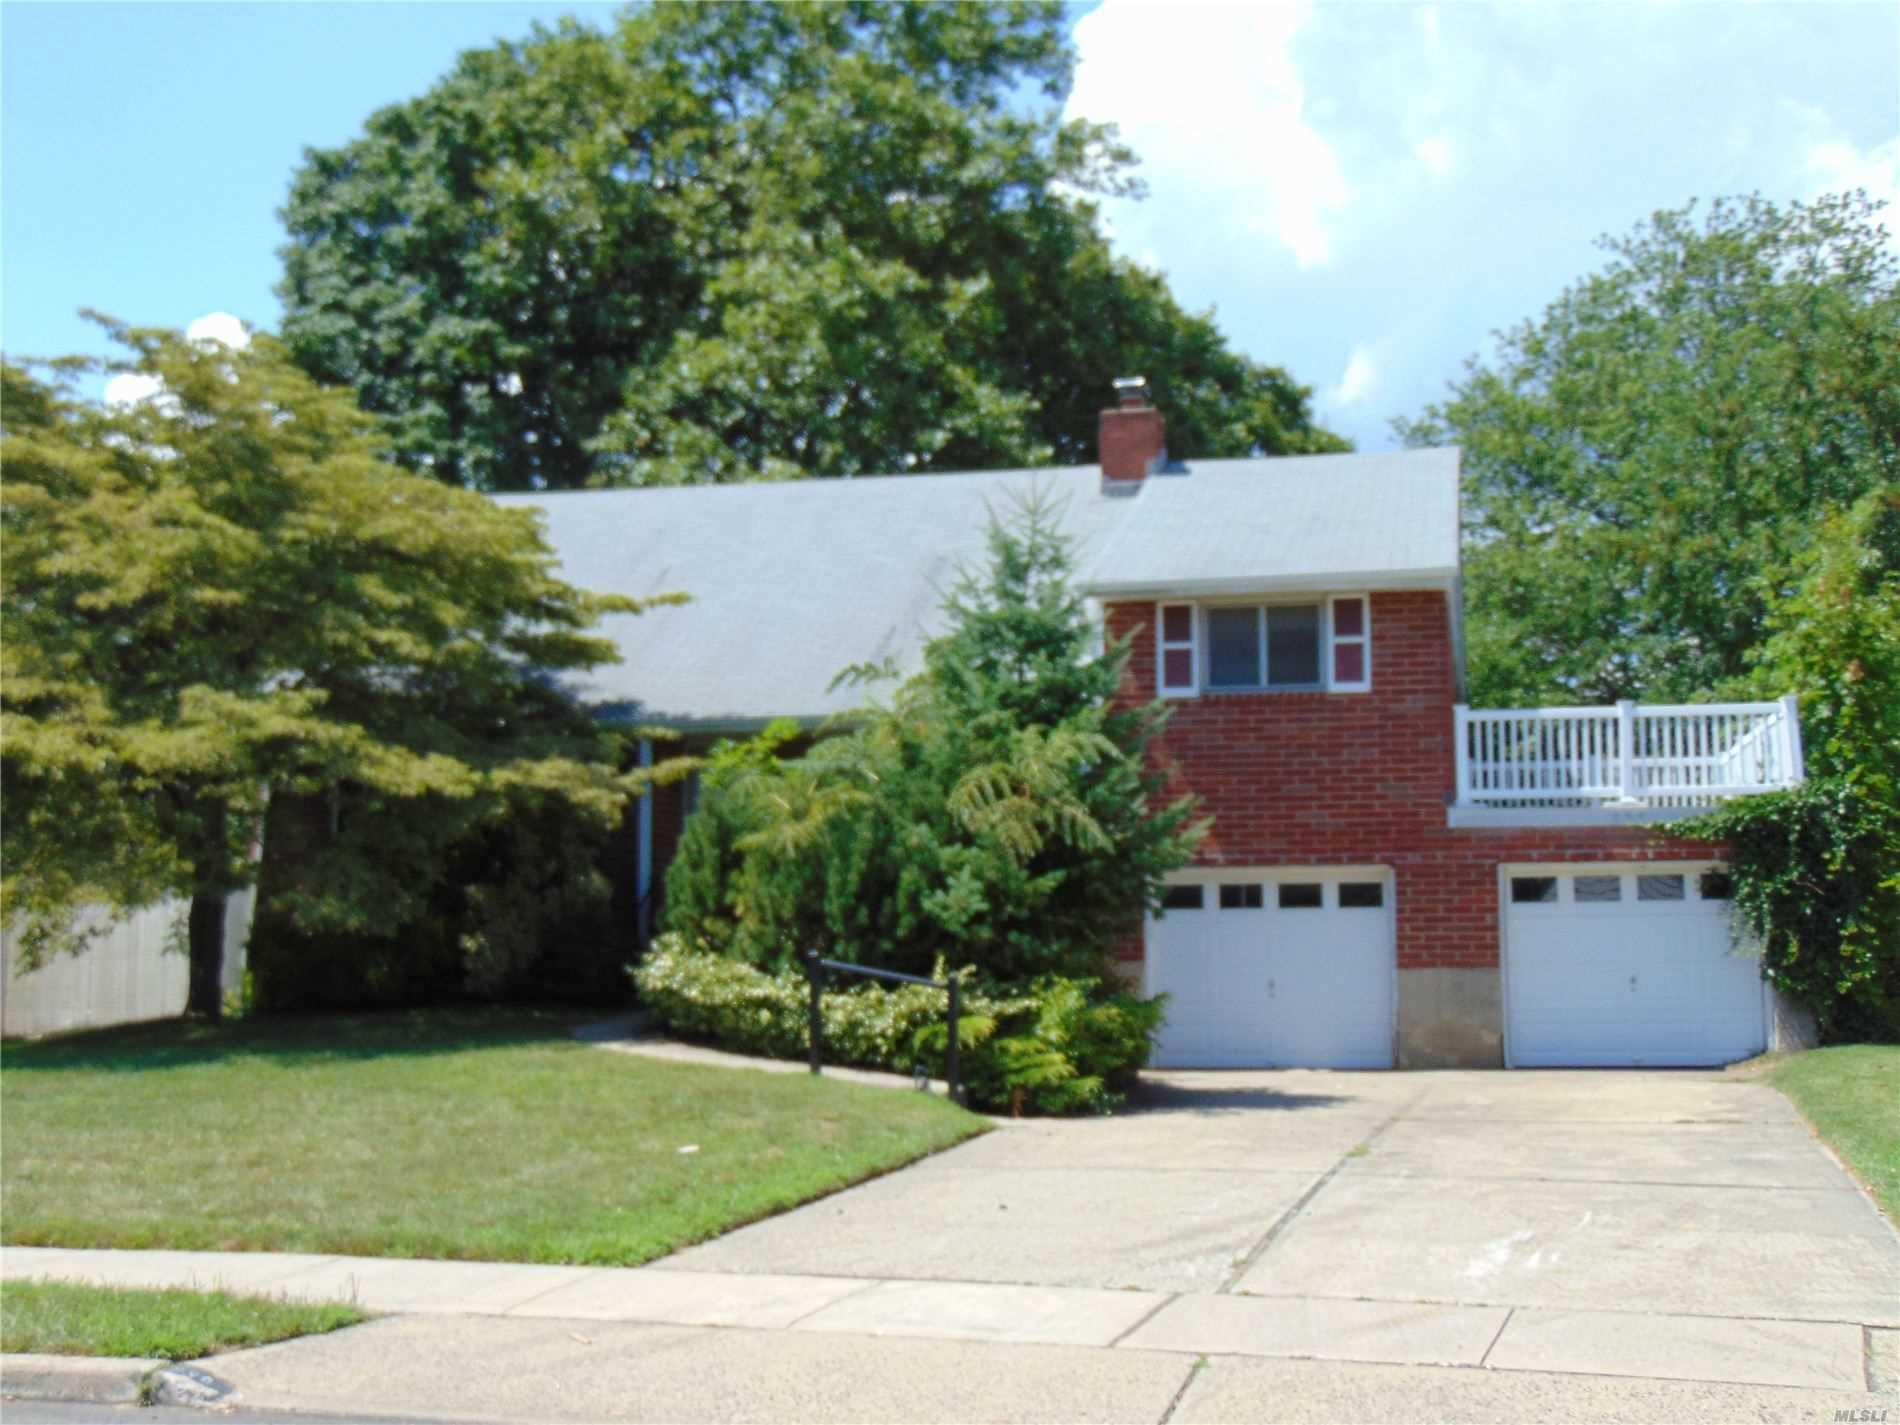 239 Normandy Road, Massapequa, NY 11758 - MLS#: 3237593